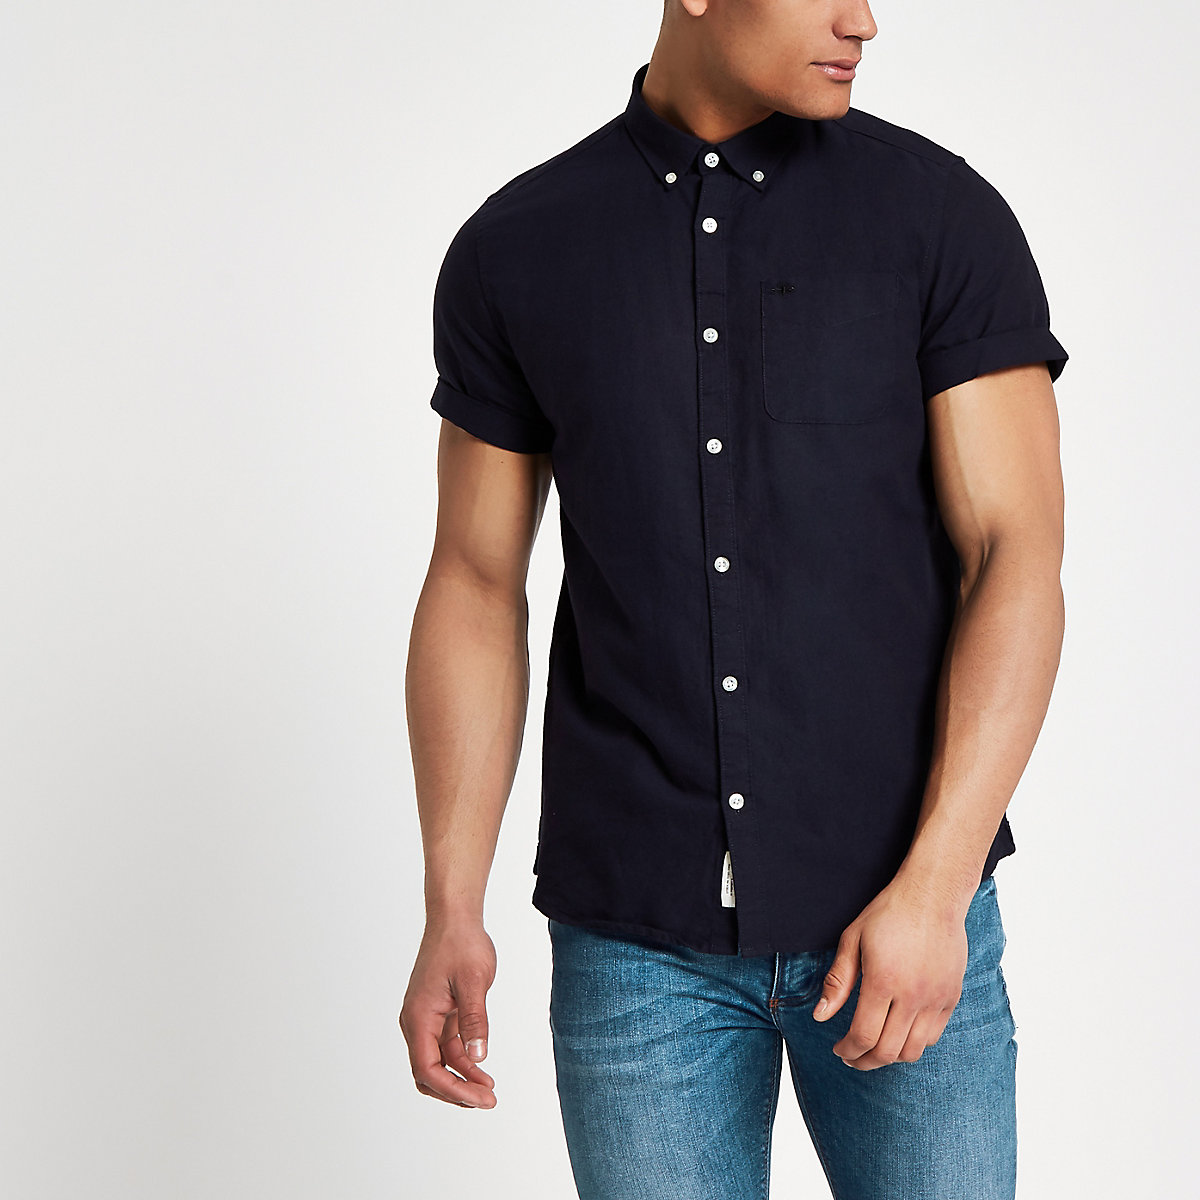 Navy wasp embroidered Oxford shirt